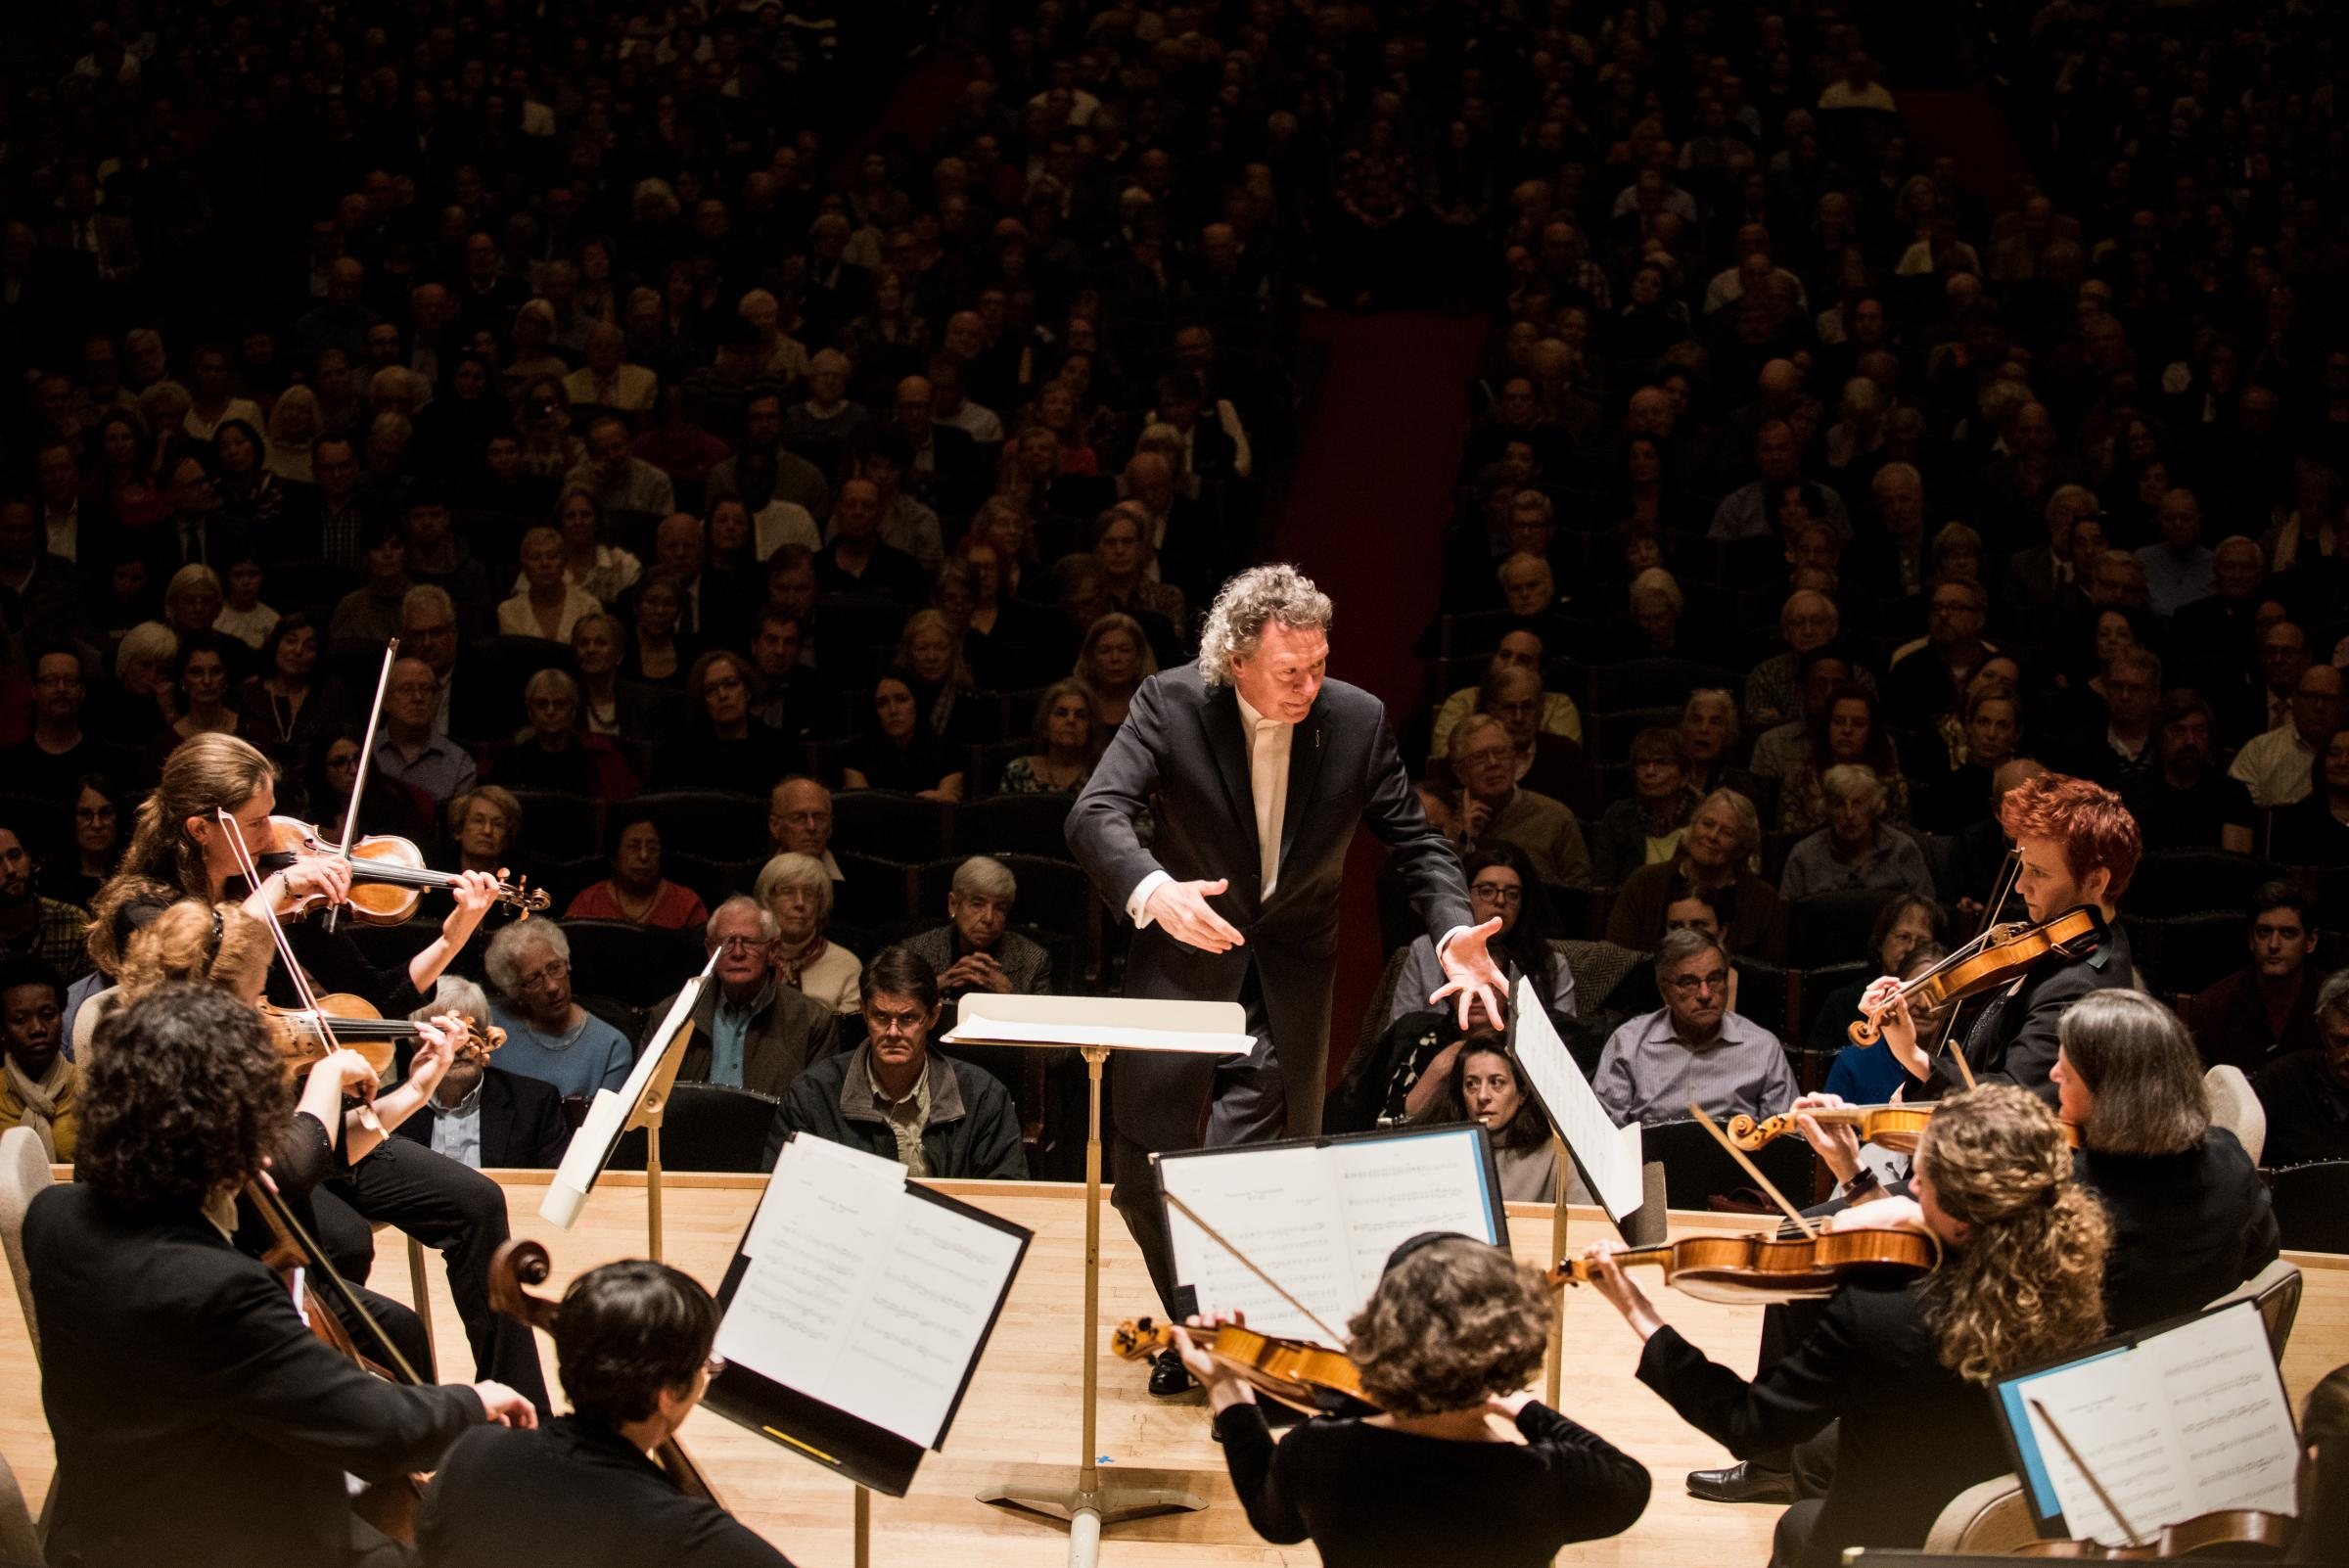 Photo: Conductor and Orchestra